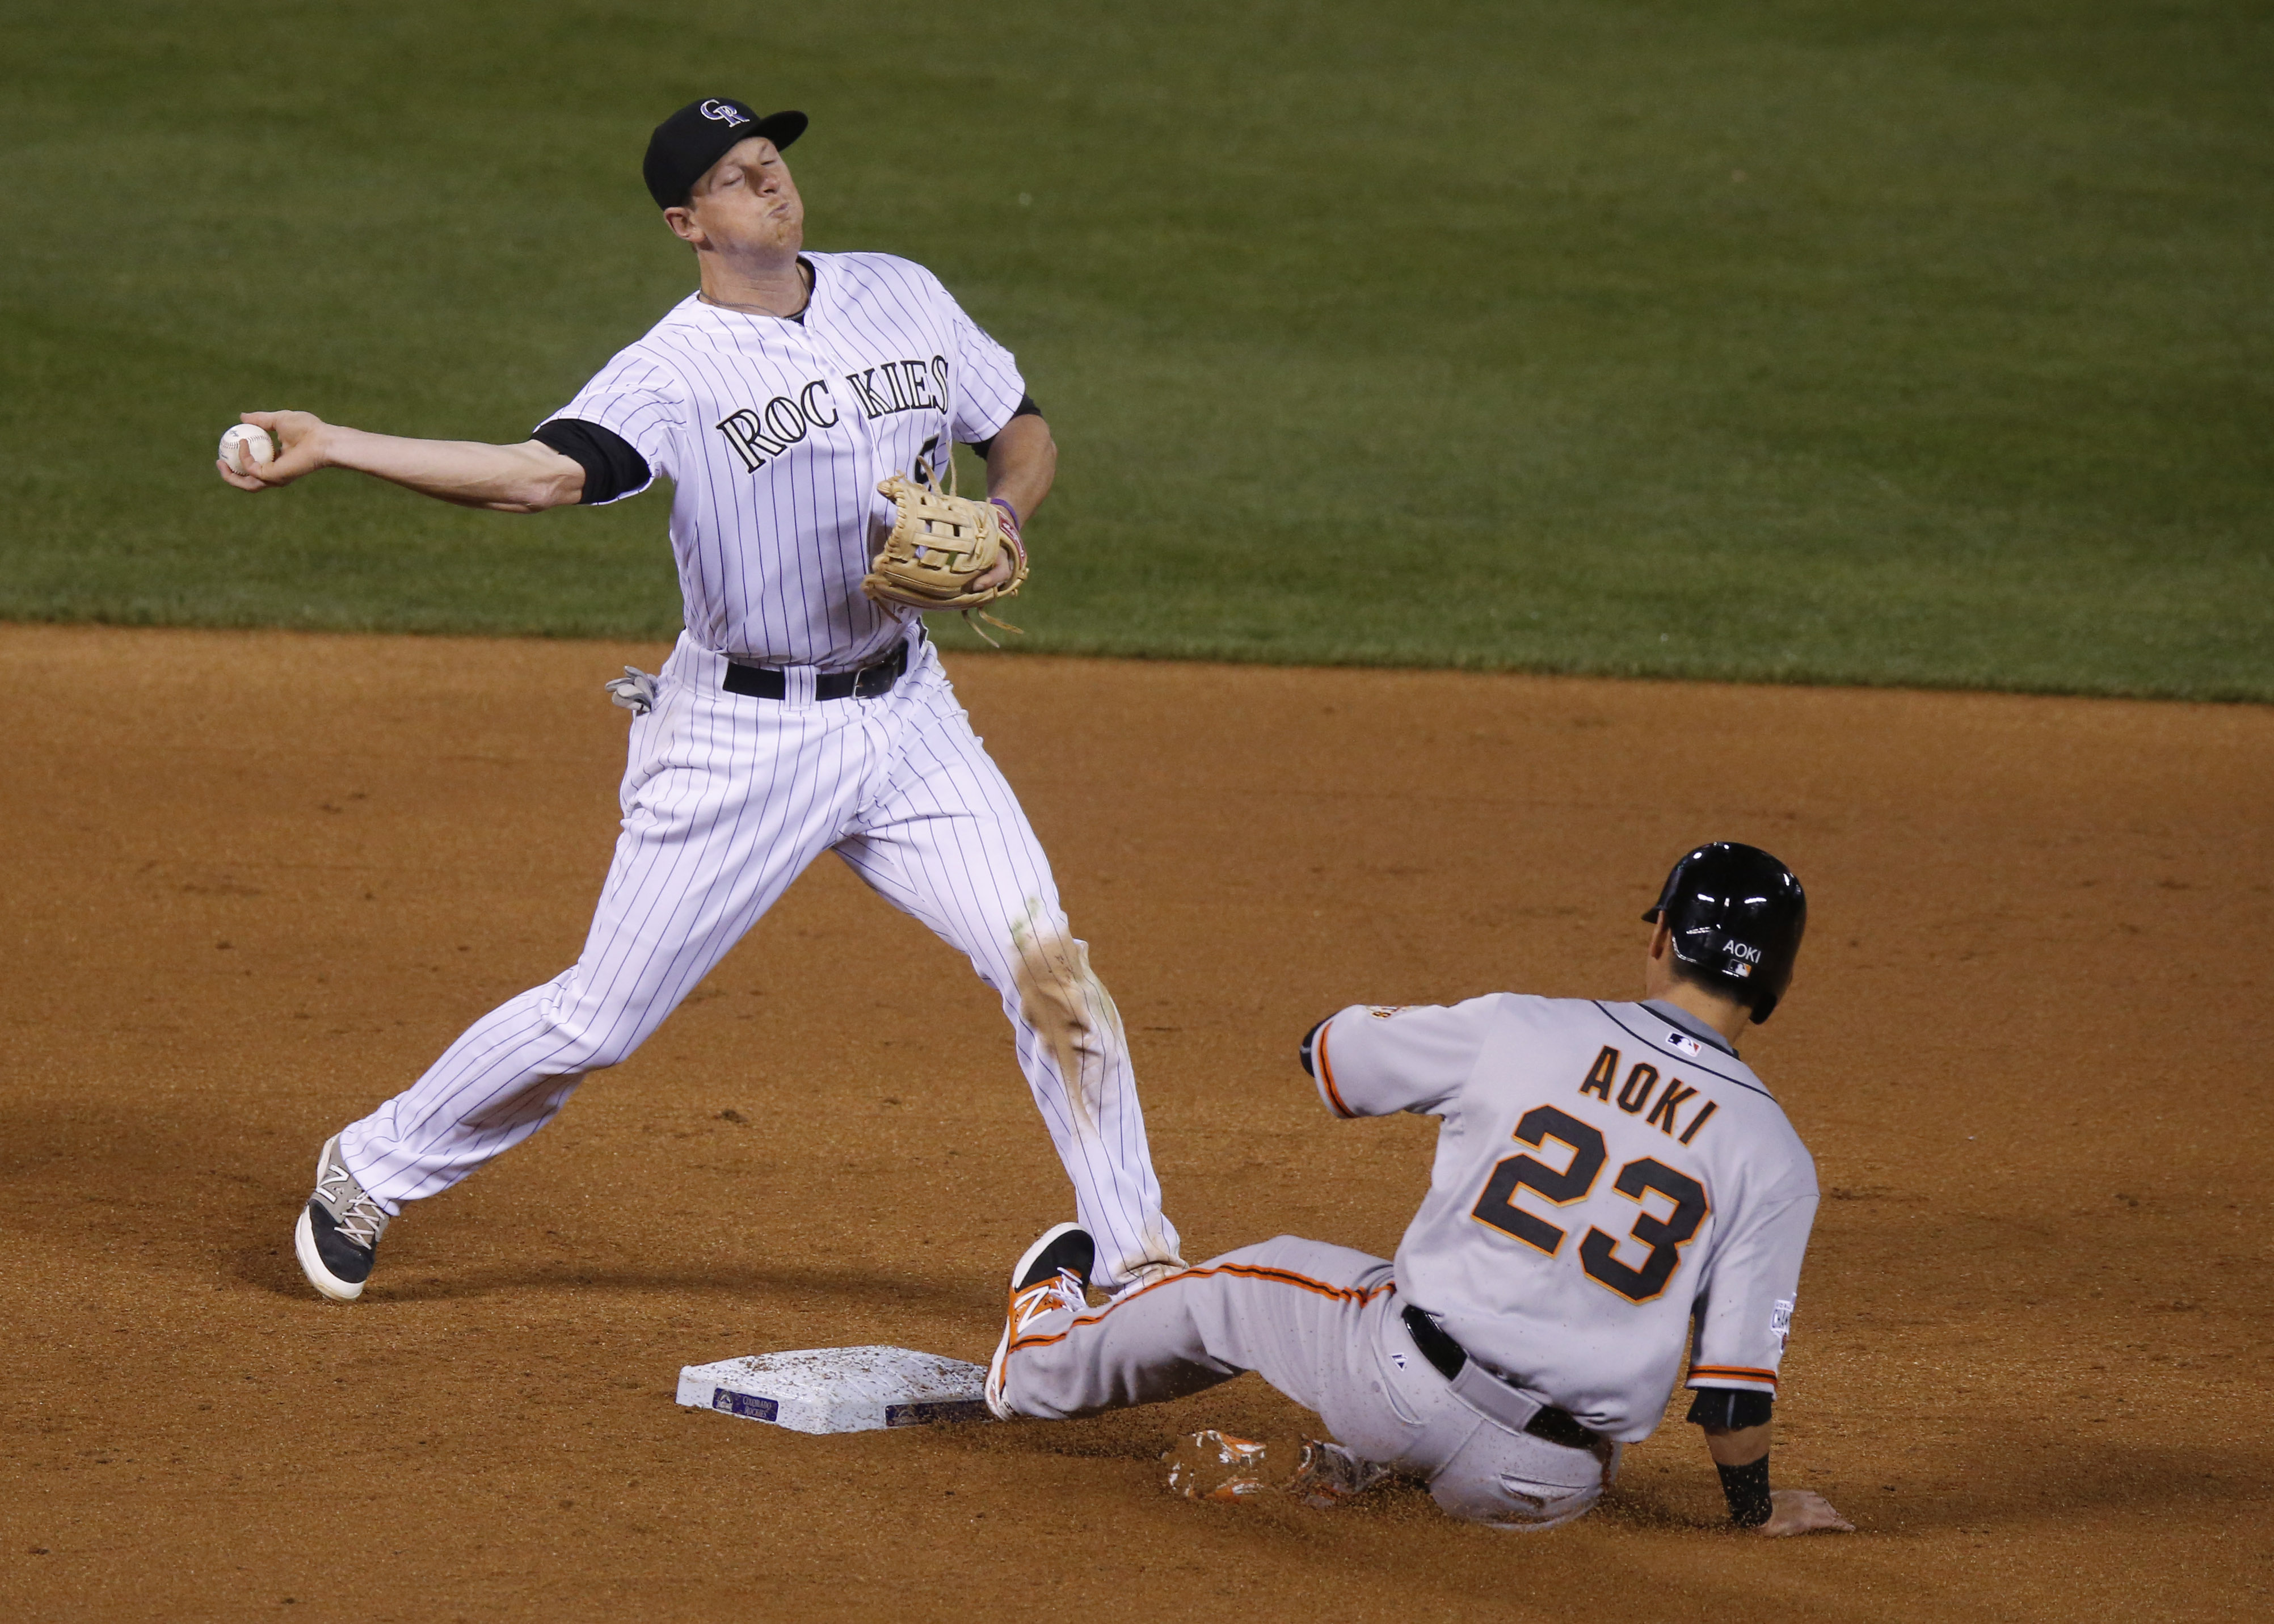 Colorado Rockies second baseman DJ LeMahieu, left, throws to first base after forcing out San Francisco Giants' Nori Aoki at second base in the ninth inning of a baseball game Saturday, April 25, 2015, in Denver. The Giants' Matt Duffy was safe at first b